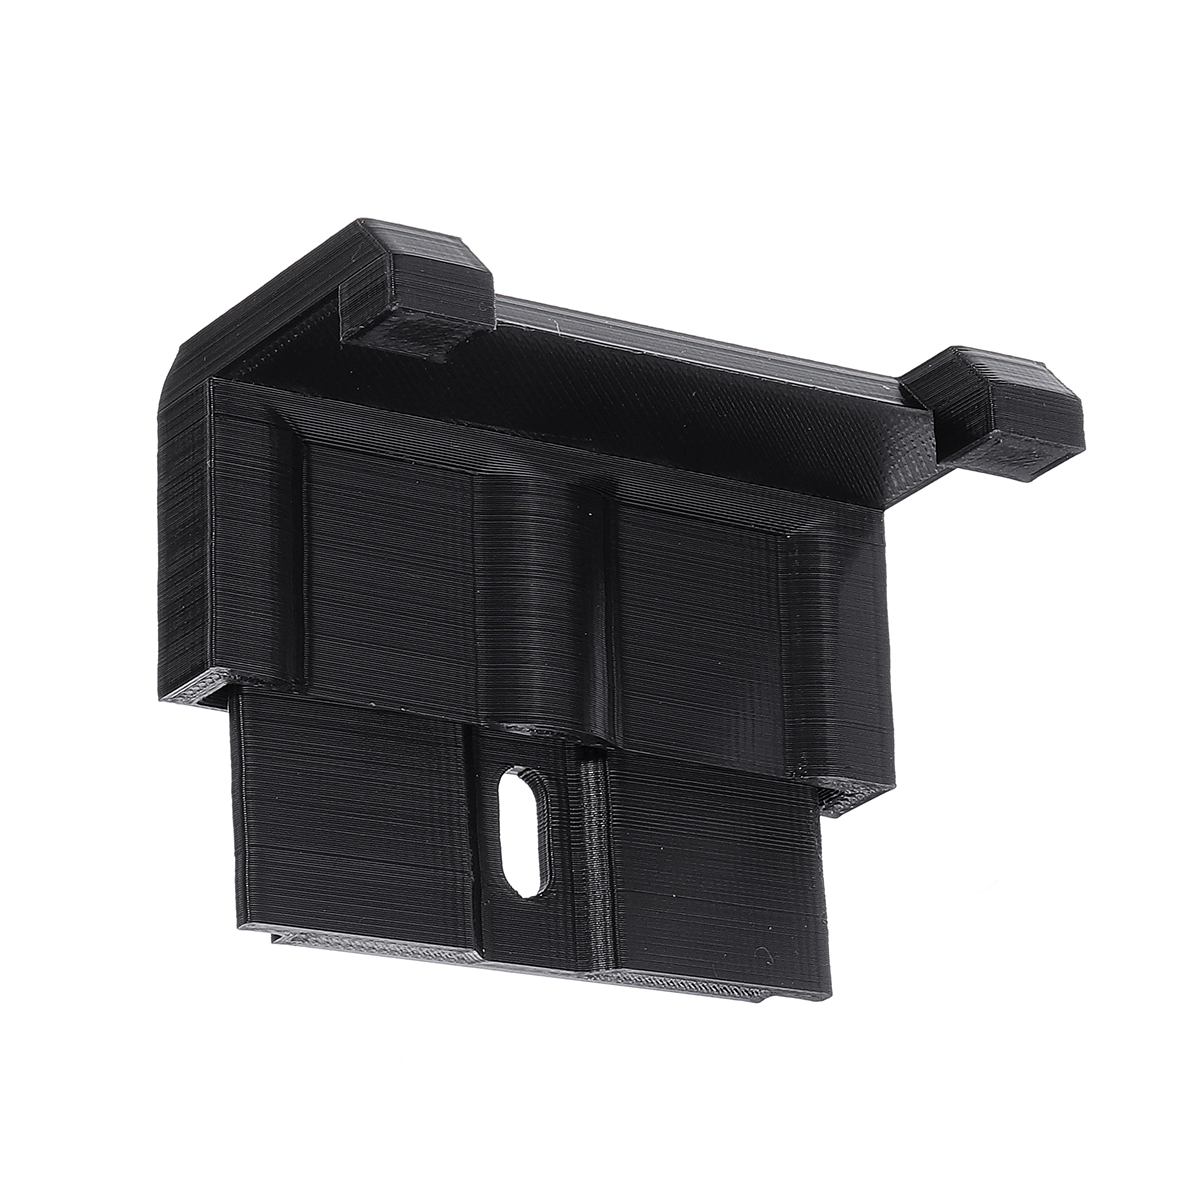 Wall Mount Bracket for Sony Playstation PS4 Pro Slim Console Stand Holder Handheld Stabilizer Bracket 19